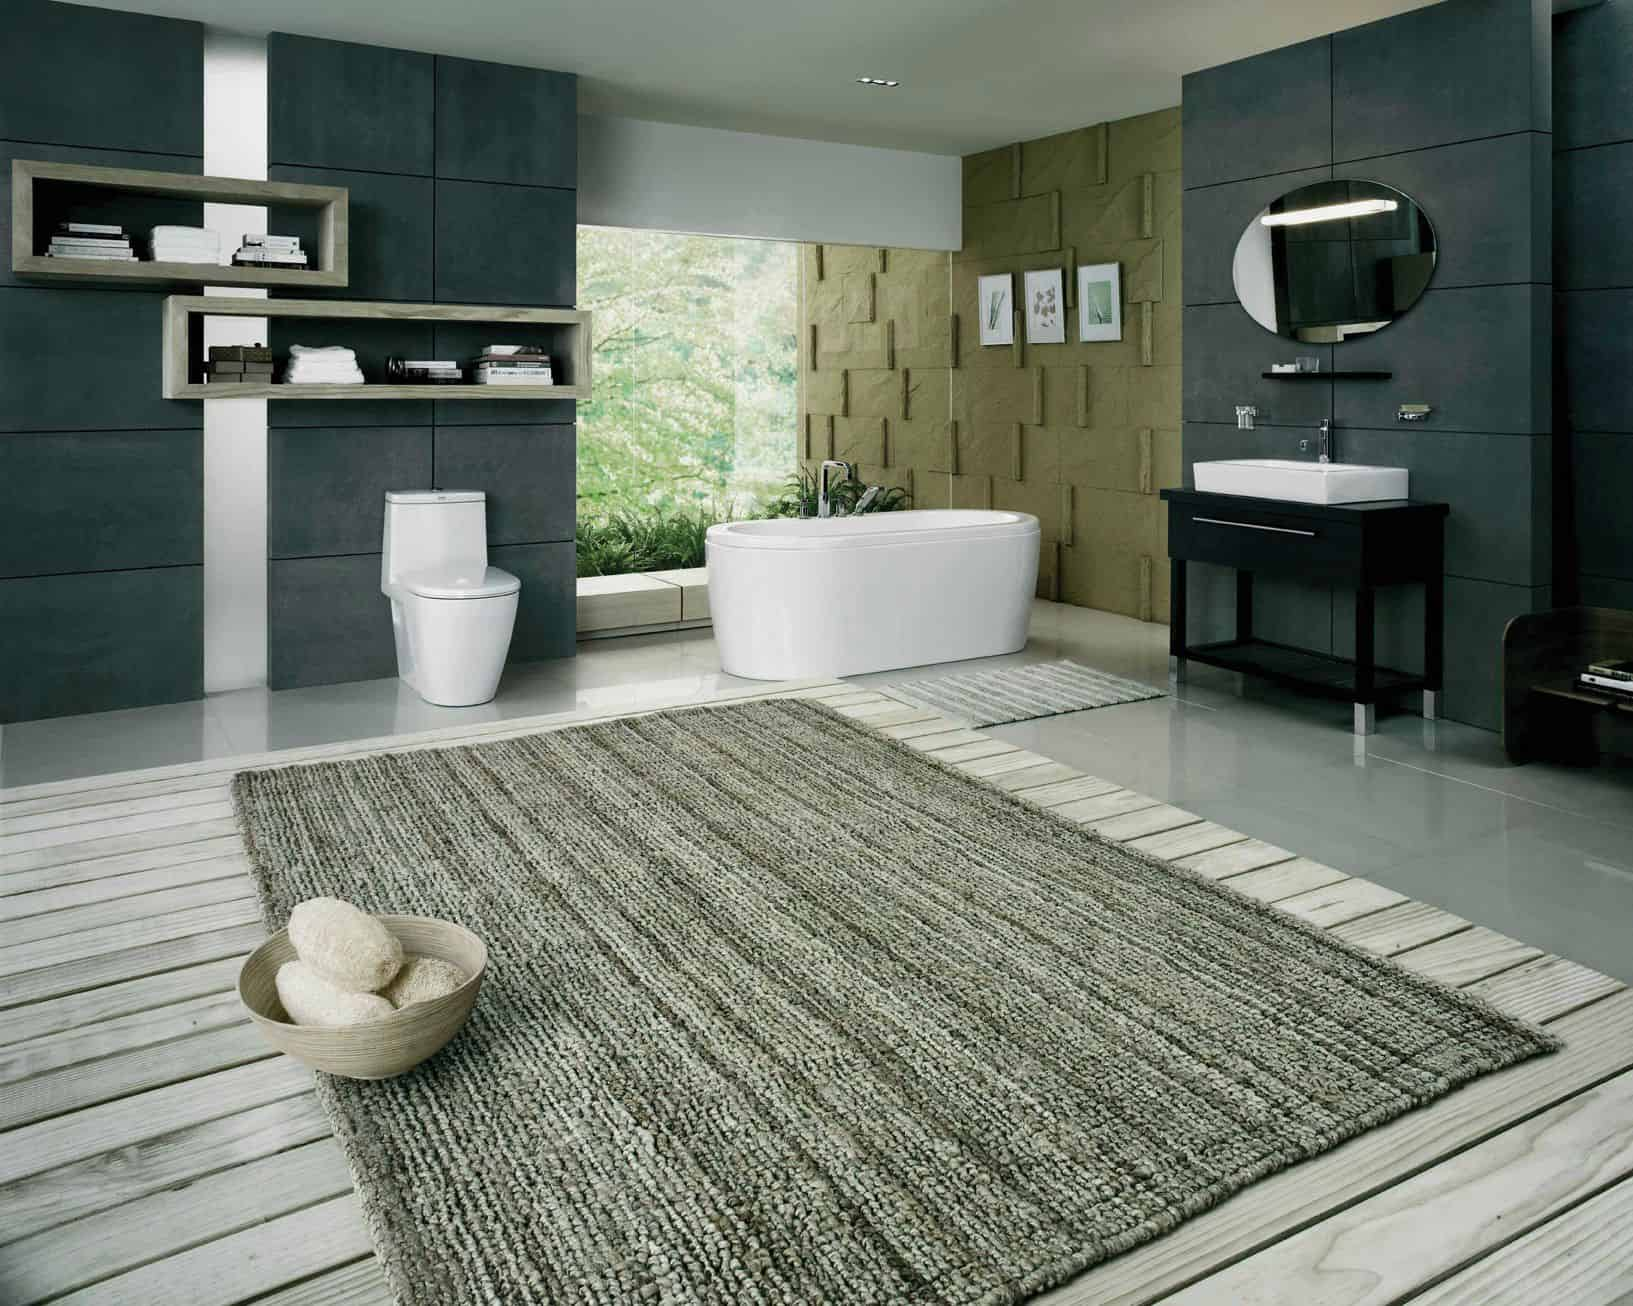 Designer Bathroom Rugs And Mats Within Finest Bathroom Grey Shag Large Bath Rugs For Modern Bathroom Floor Design On Designer Bathroom Rugs And Mats